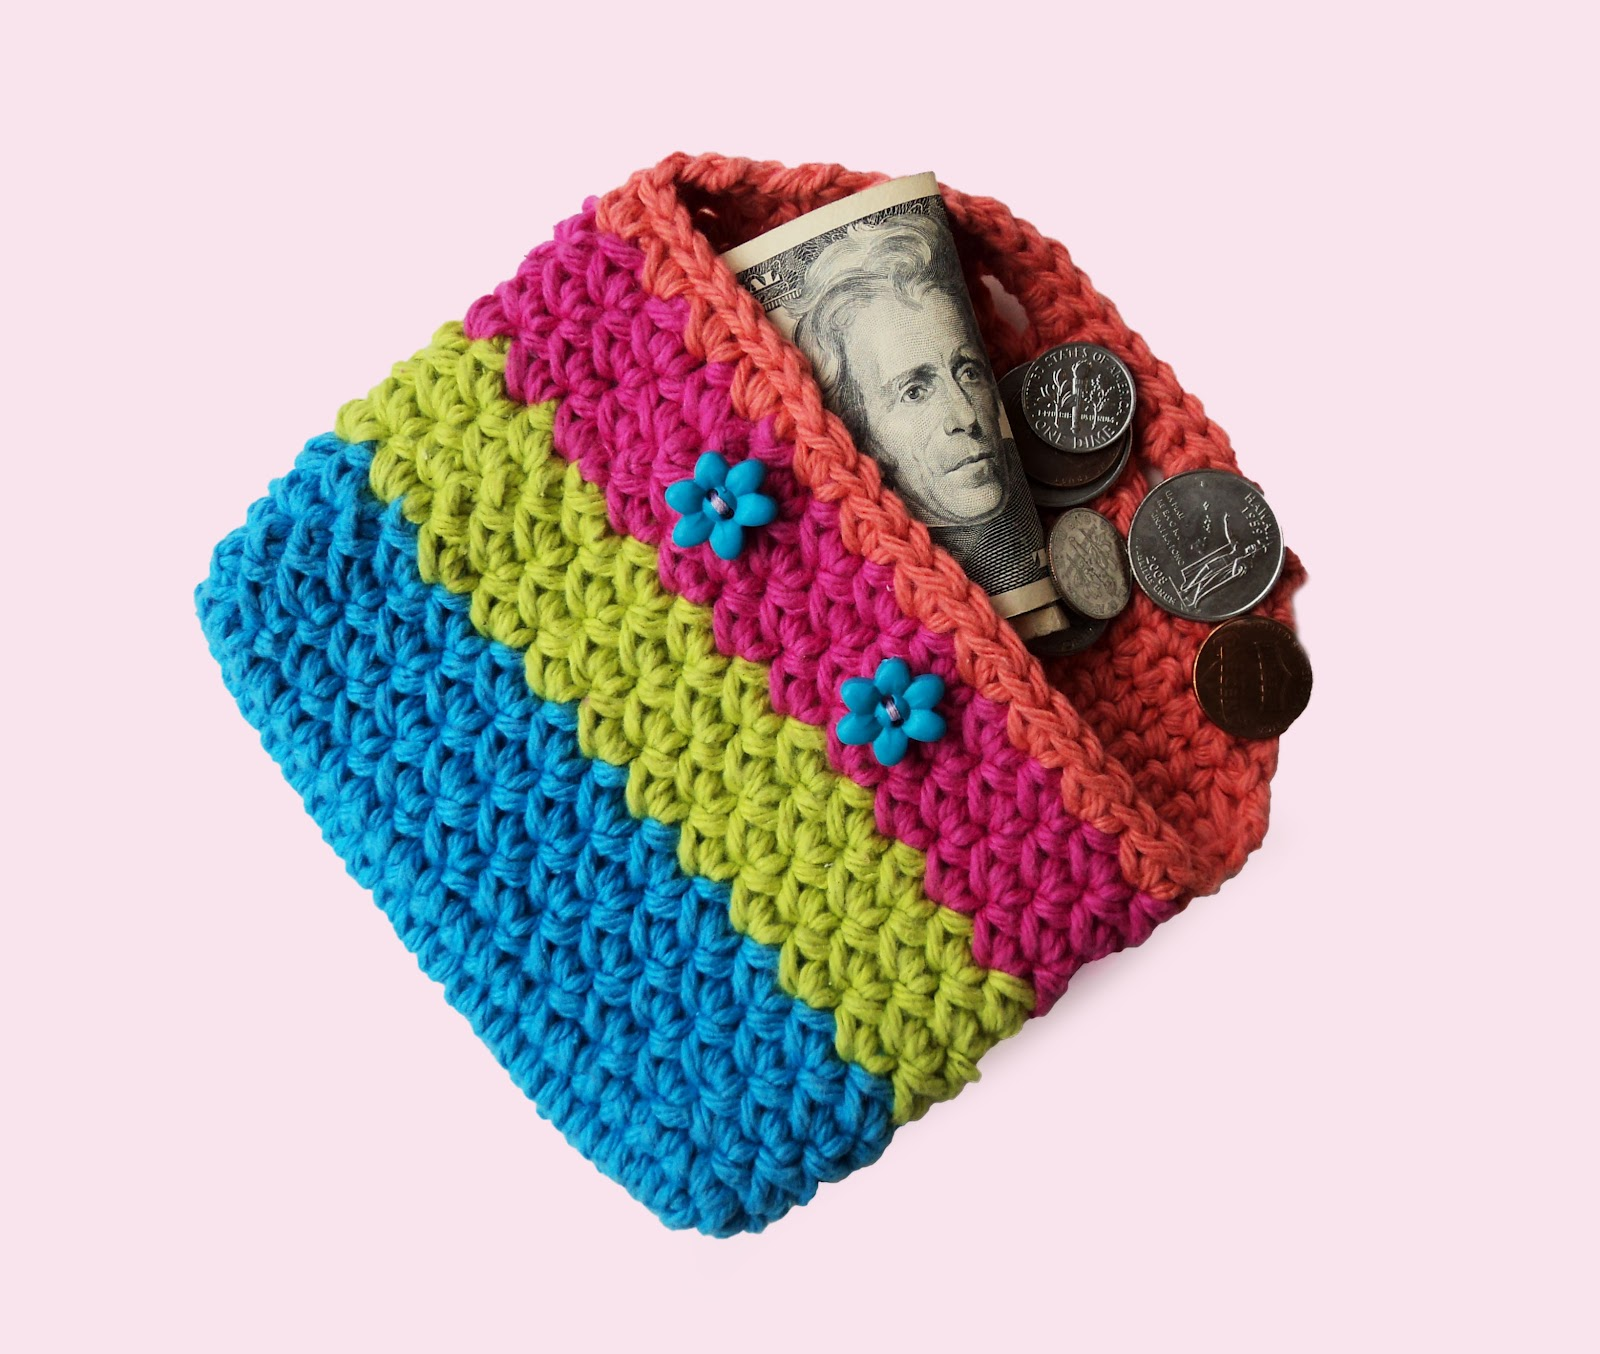 Simple Crochet Coin Purse : The finished coin purse you can crochet using this pattern measures 5 ...